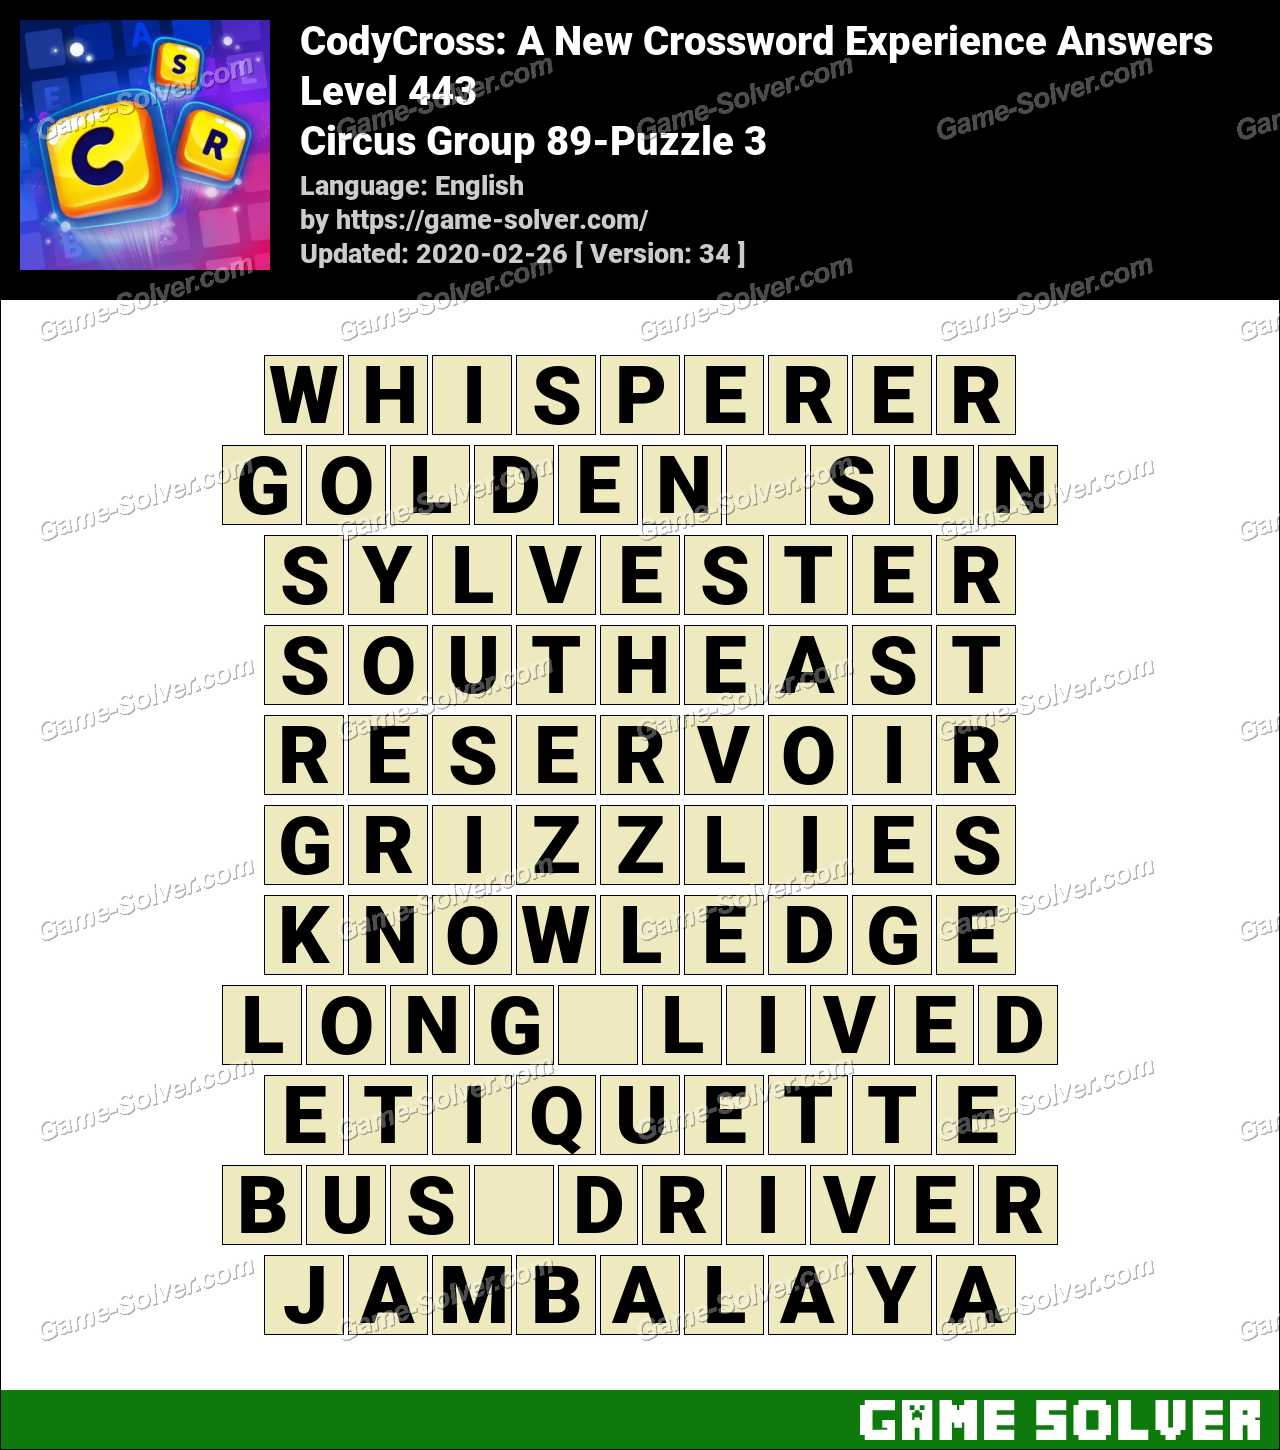 CodyCross Circus Group 89-Puzzle 3 Answers